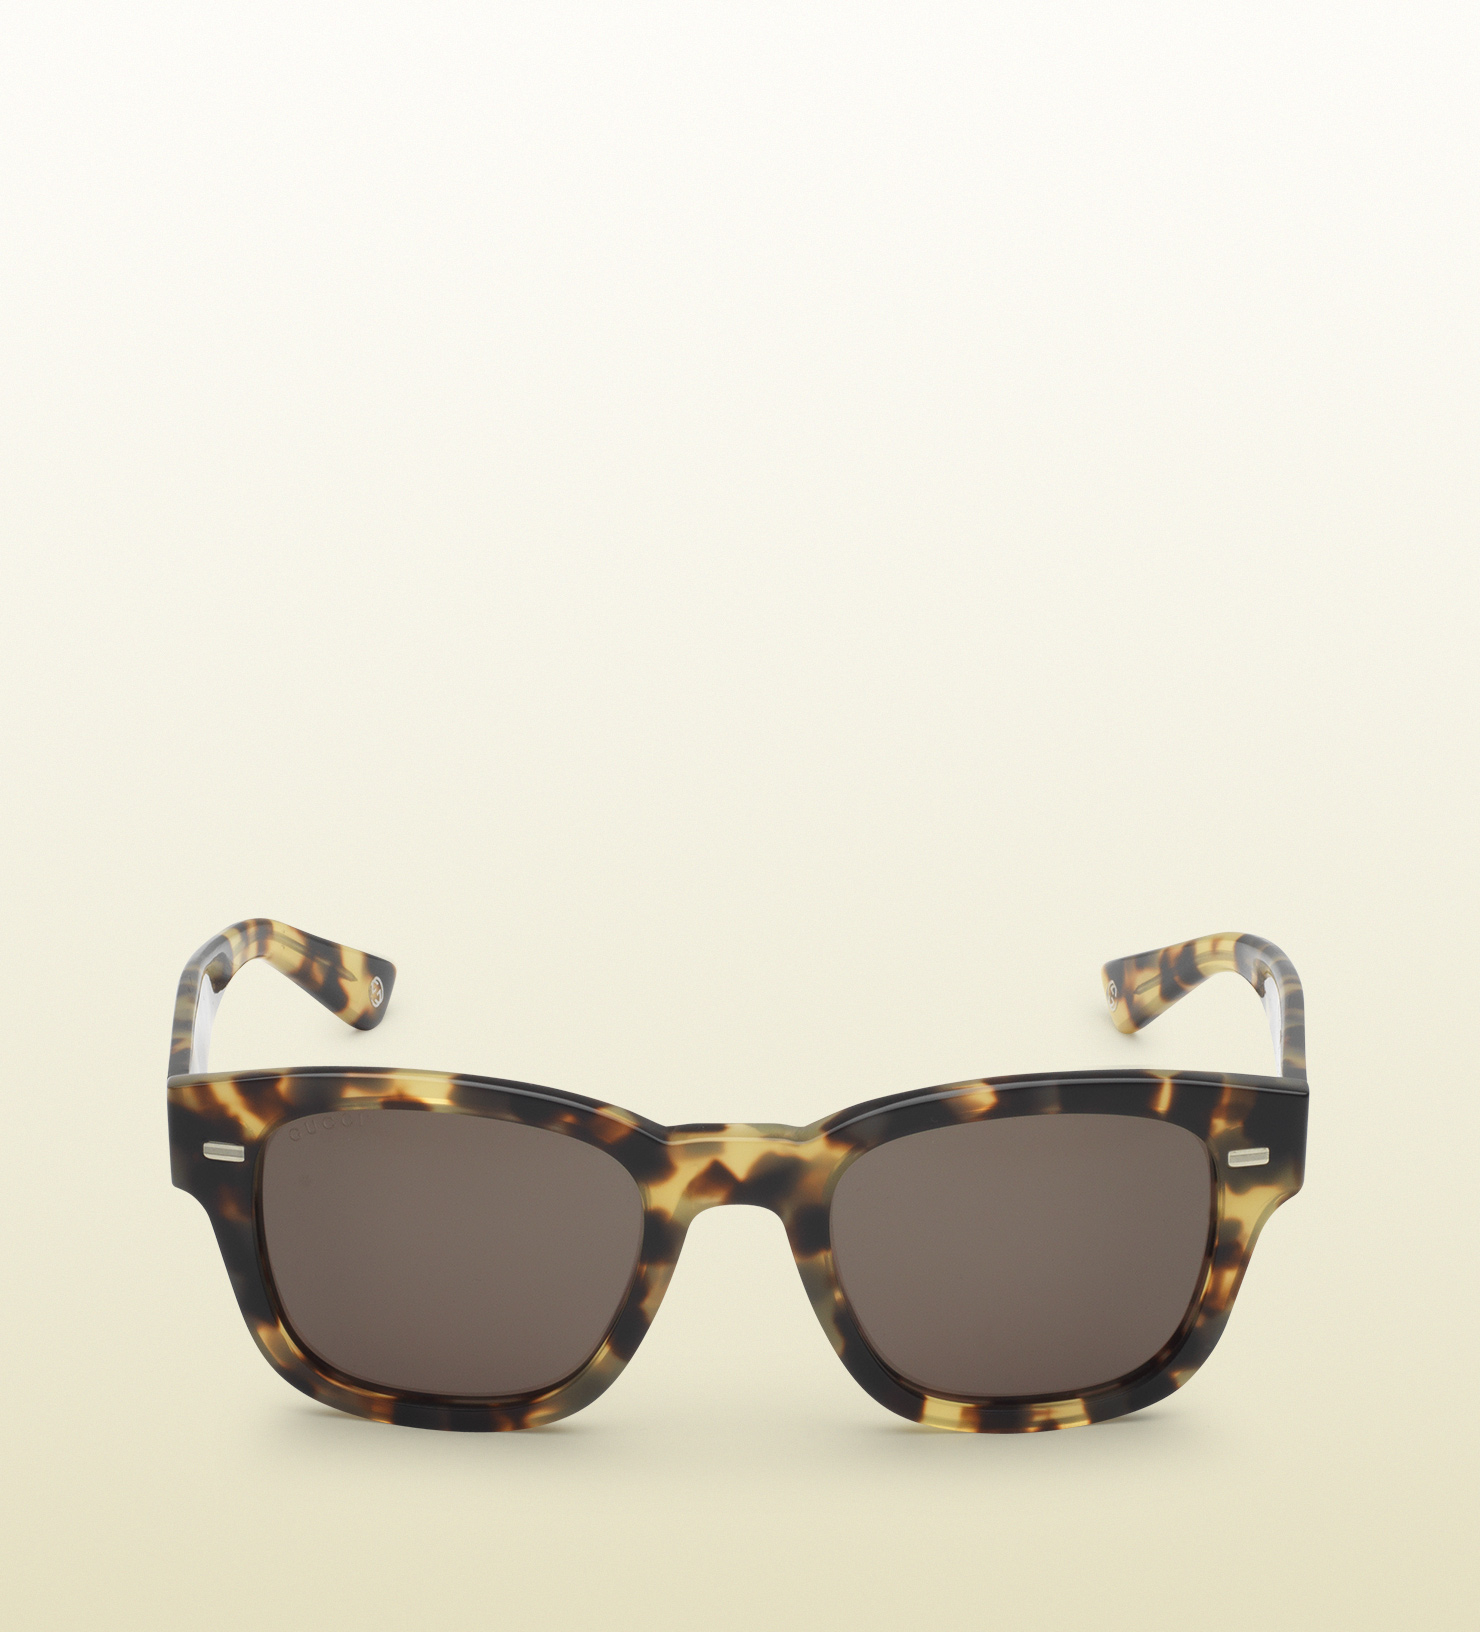 a3302b8483 Lyst - Gucci Havana Acetate Round-frame Sunglasses in Yellow for Men